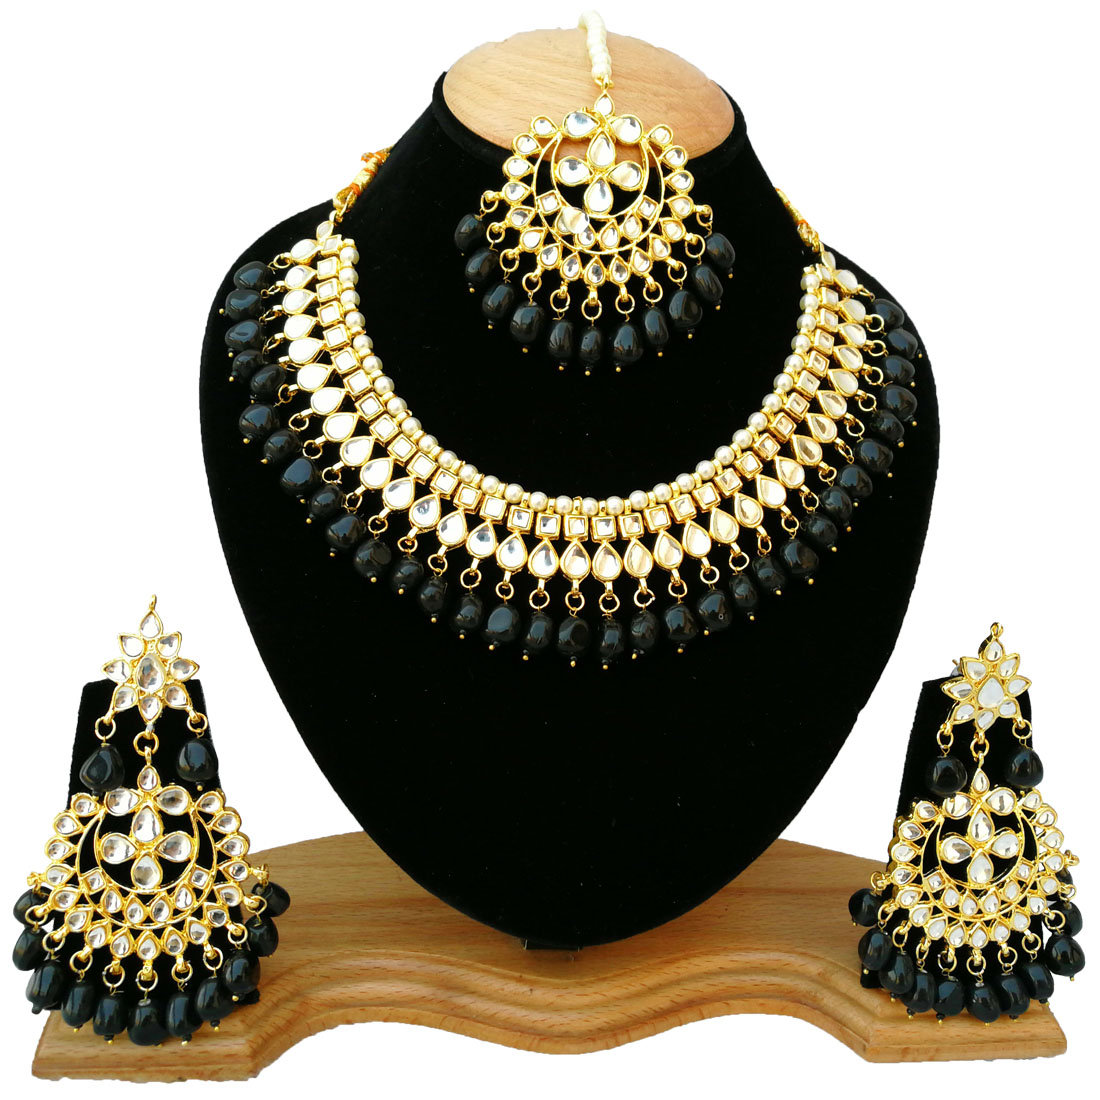 Excited to share the latest addition to my #etsy shop: Retailbees KUNDAN JEWELRY| Indian Bridal Jewelery Necklace| Necklace set| Pearls Necklace|Bollywood Jewelry|Fashion Jewelery  #black #wedding #gold #necklace #yes #pearl #women #glass #victor